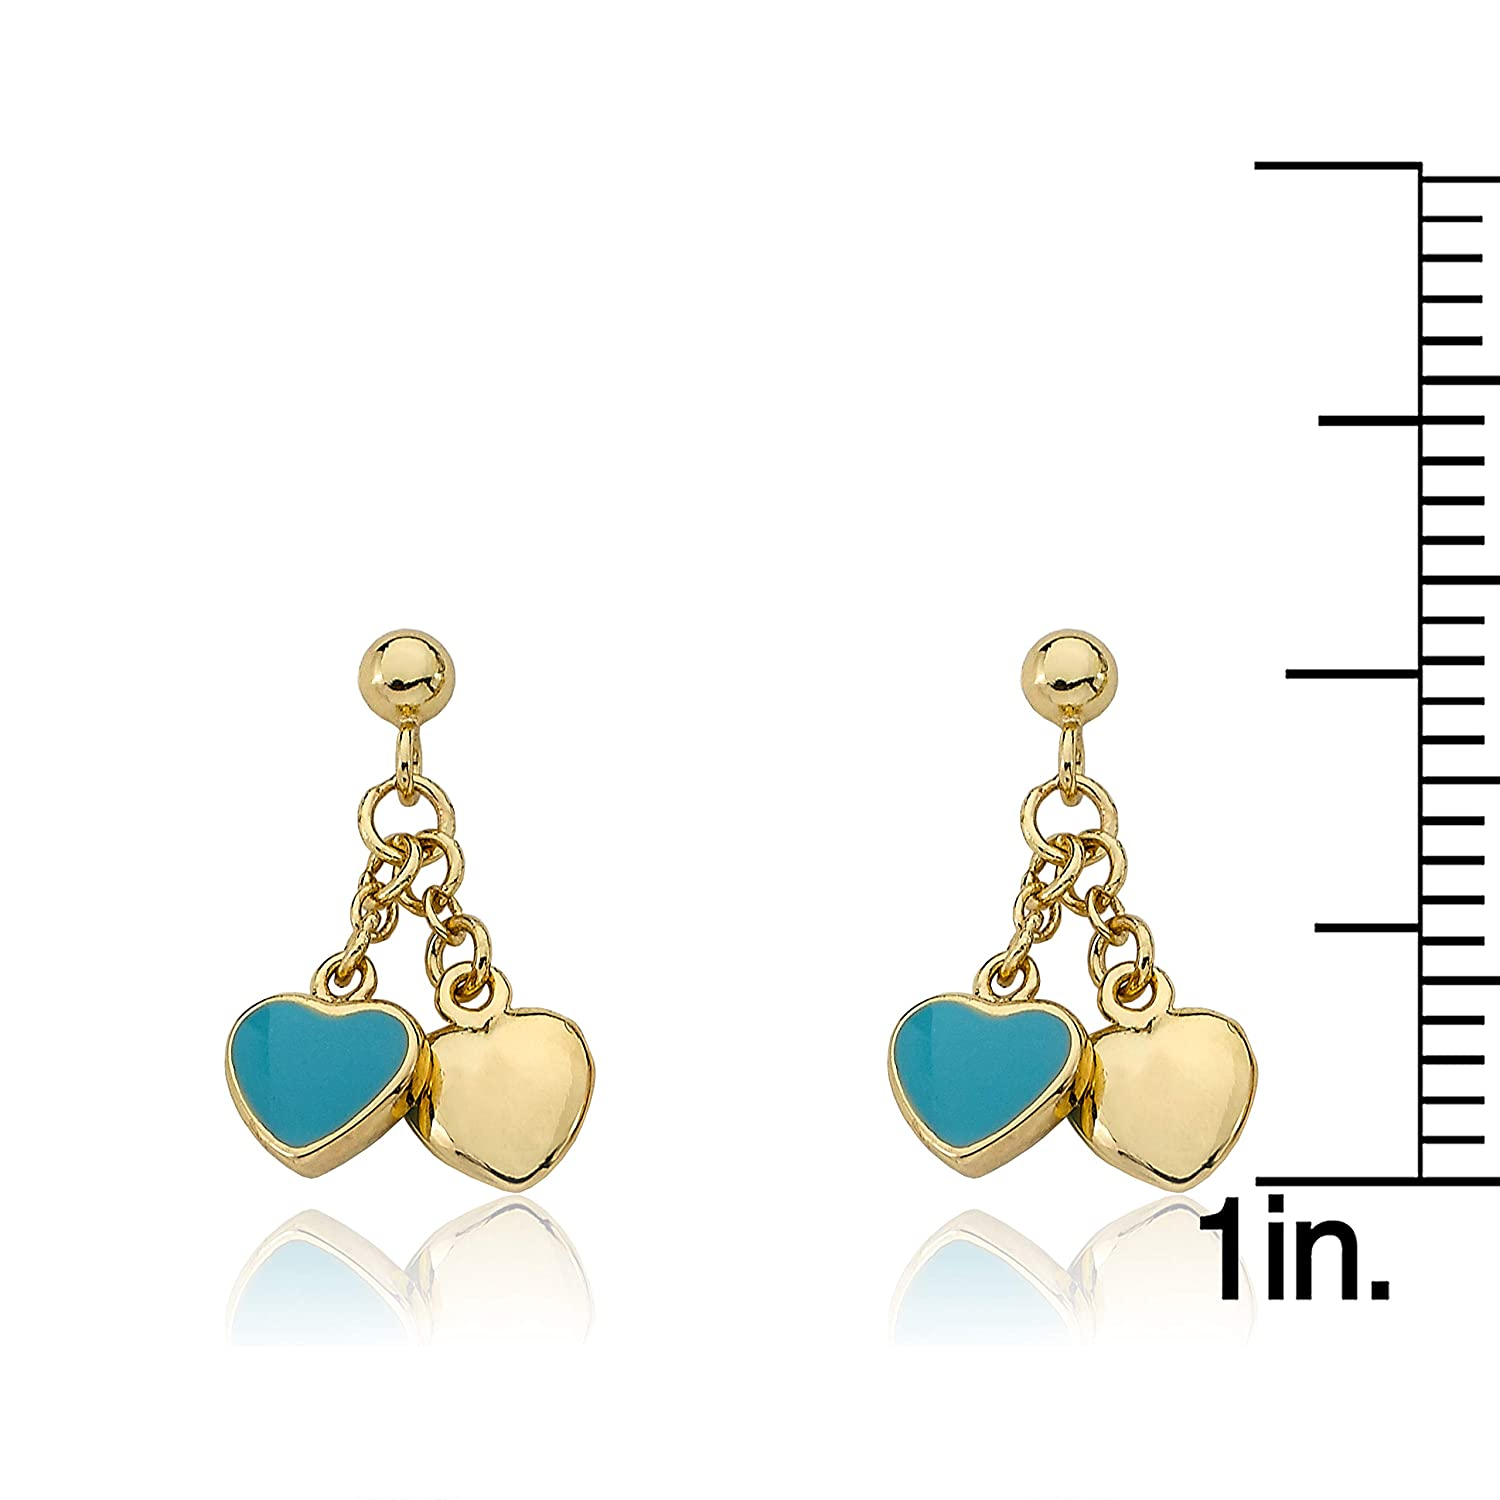 Surgical Steel Posts Little Miss Twin Stars I LOVE My Jewels 14k Gold-Plated Light Blue Heart /& Gold Heart Dangle Earring Safe for Sensitive Ears